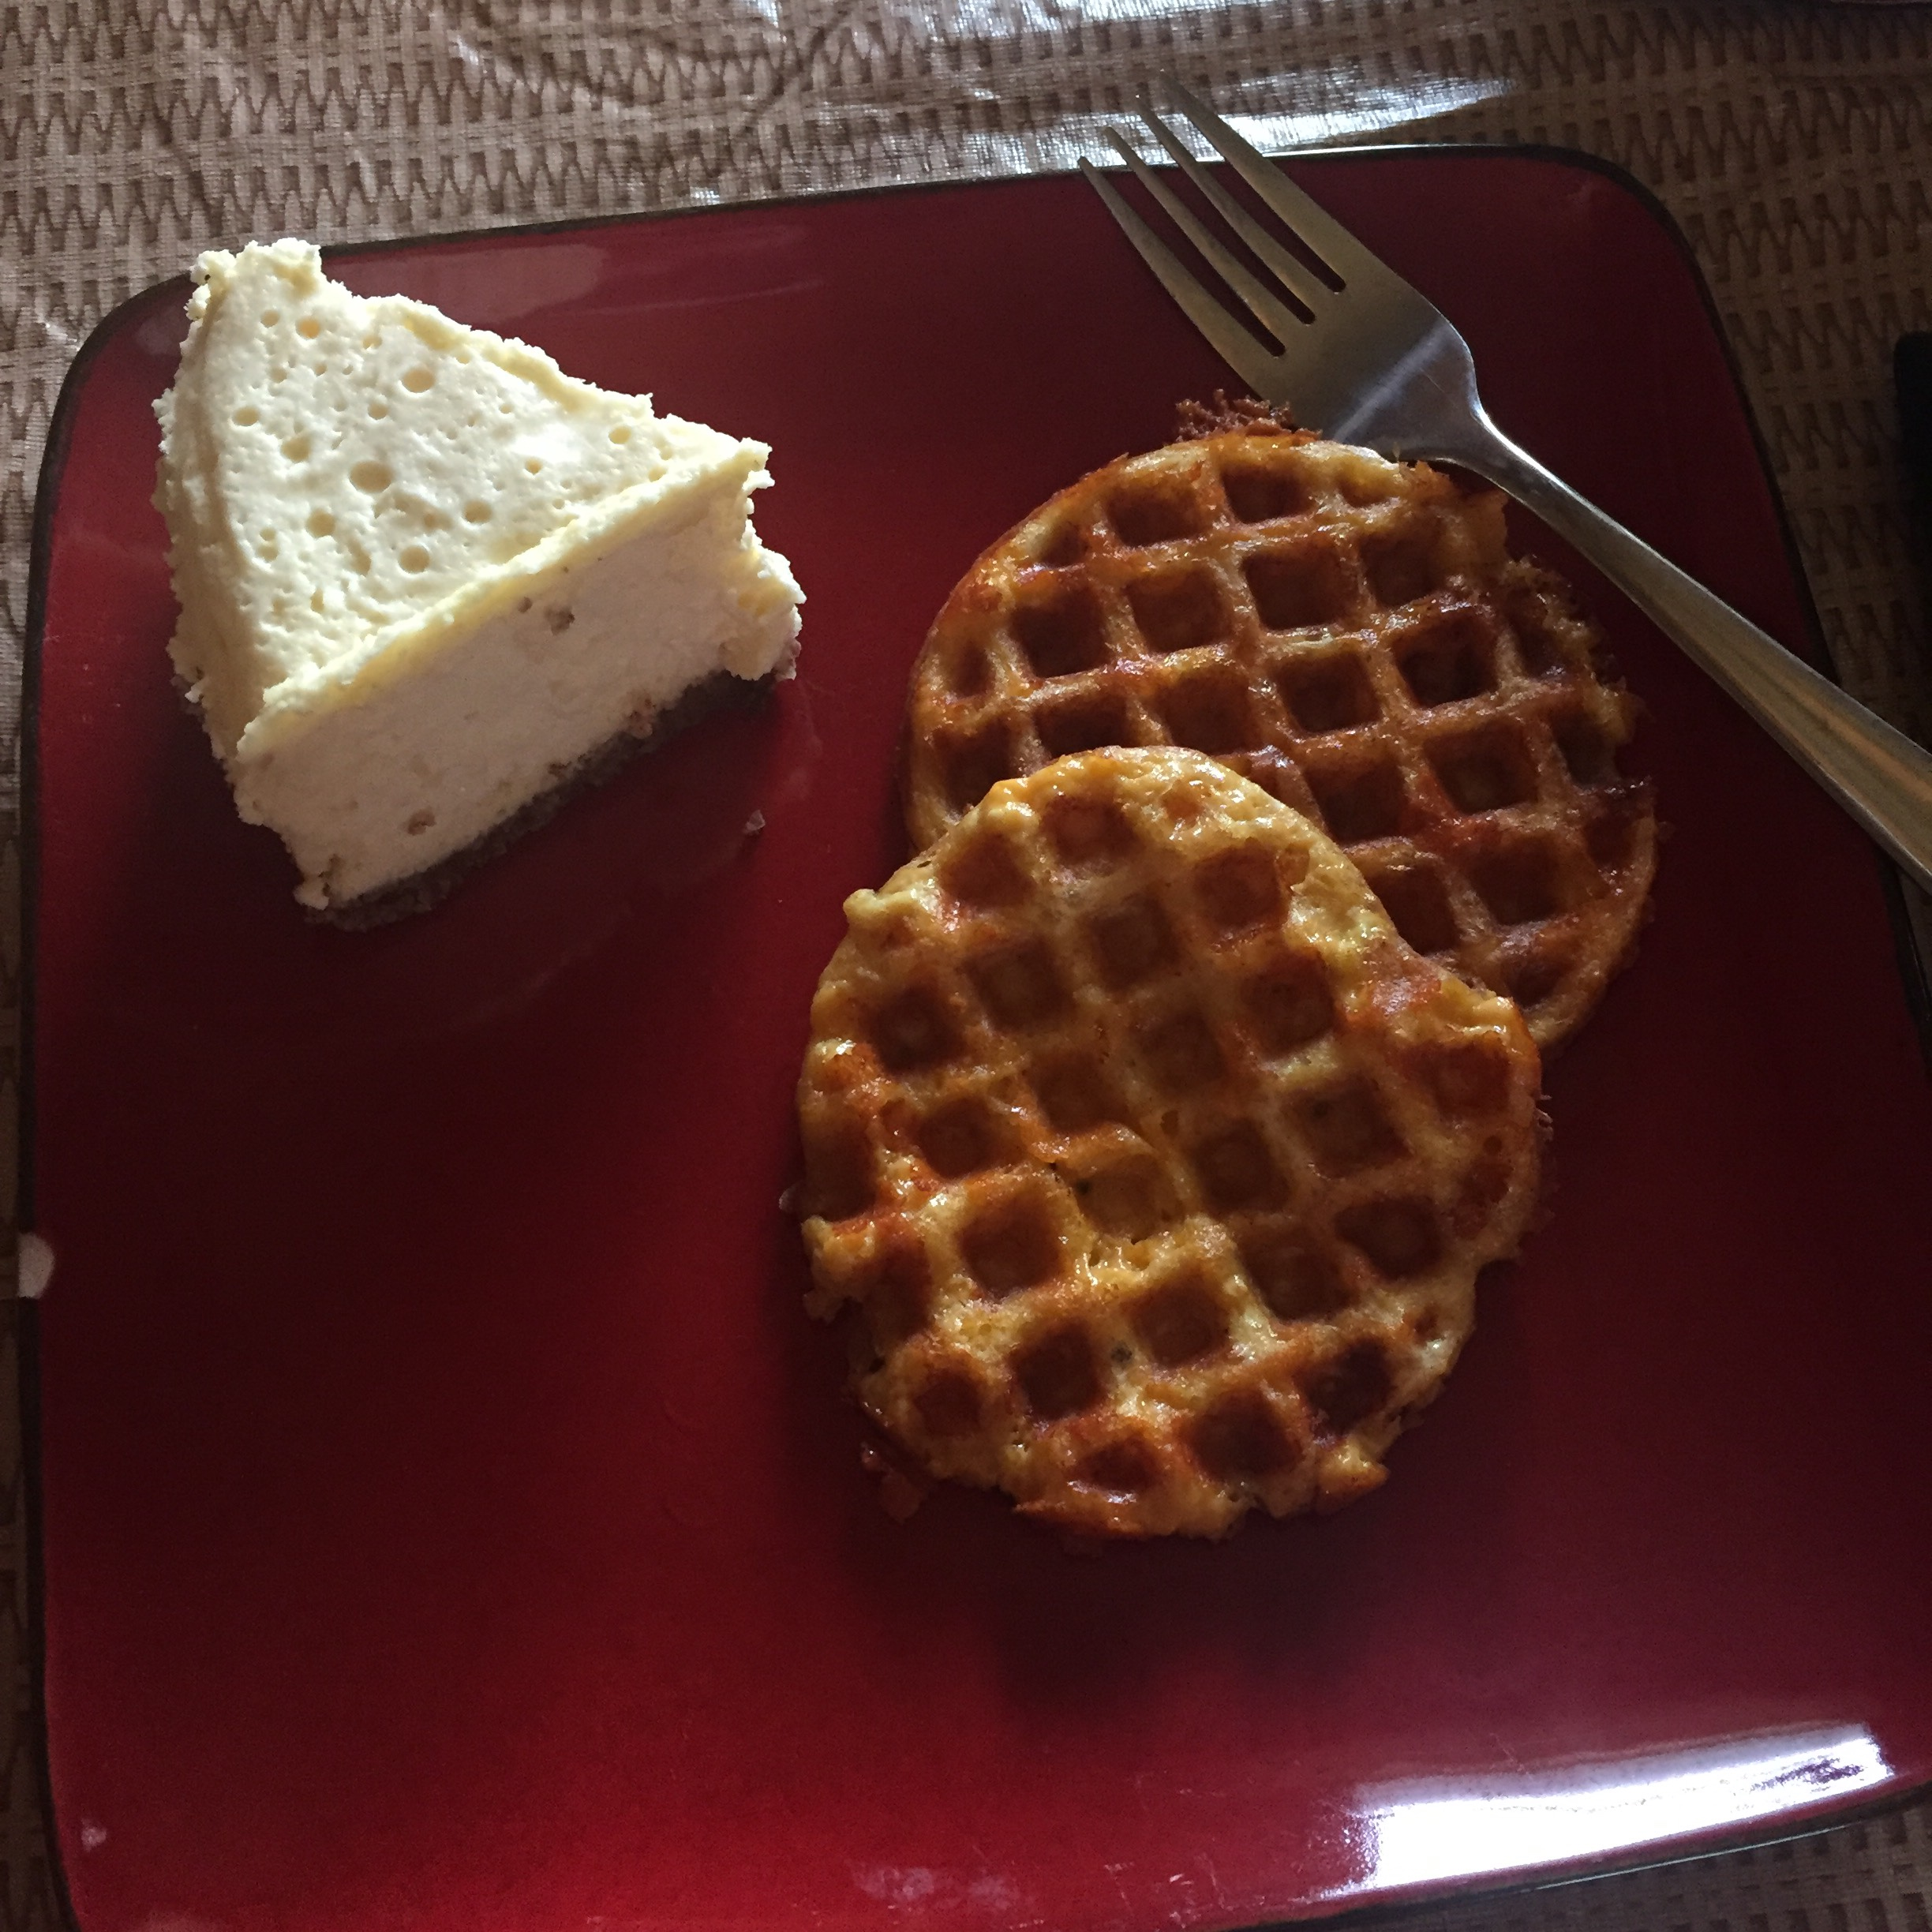 Chaffles and cheesecake on square red plate